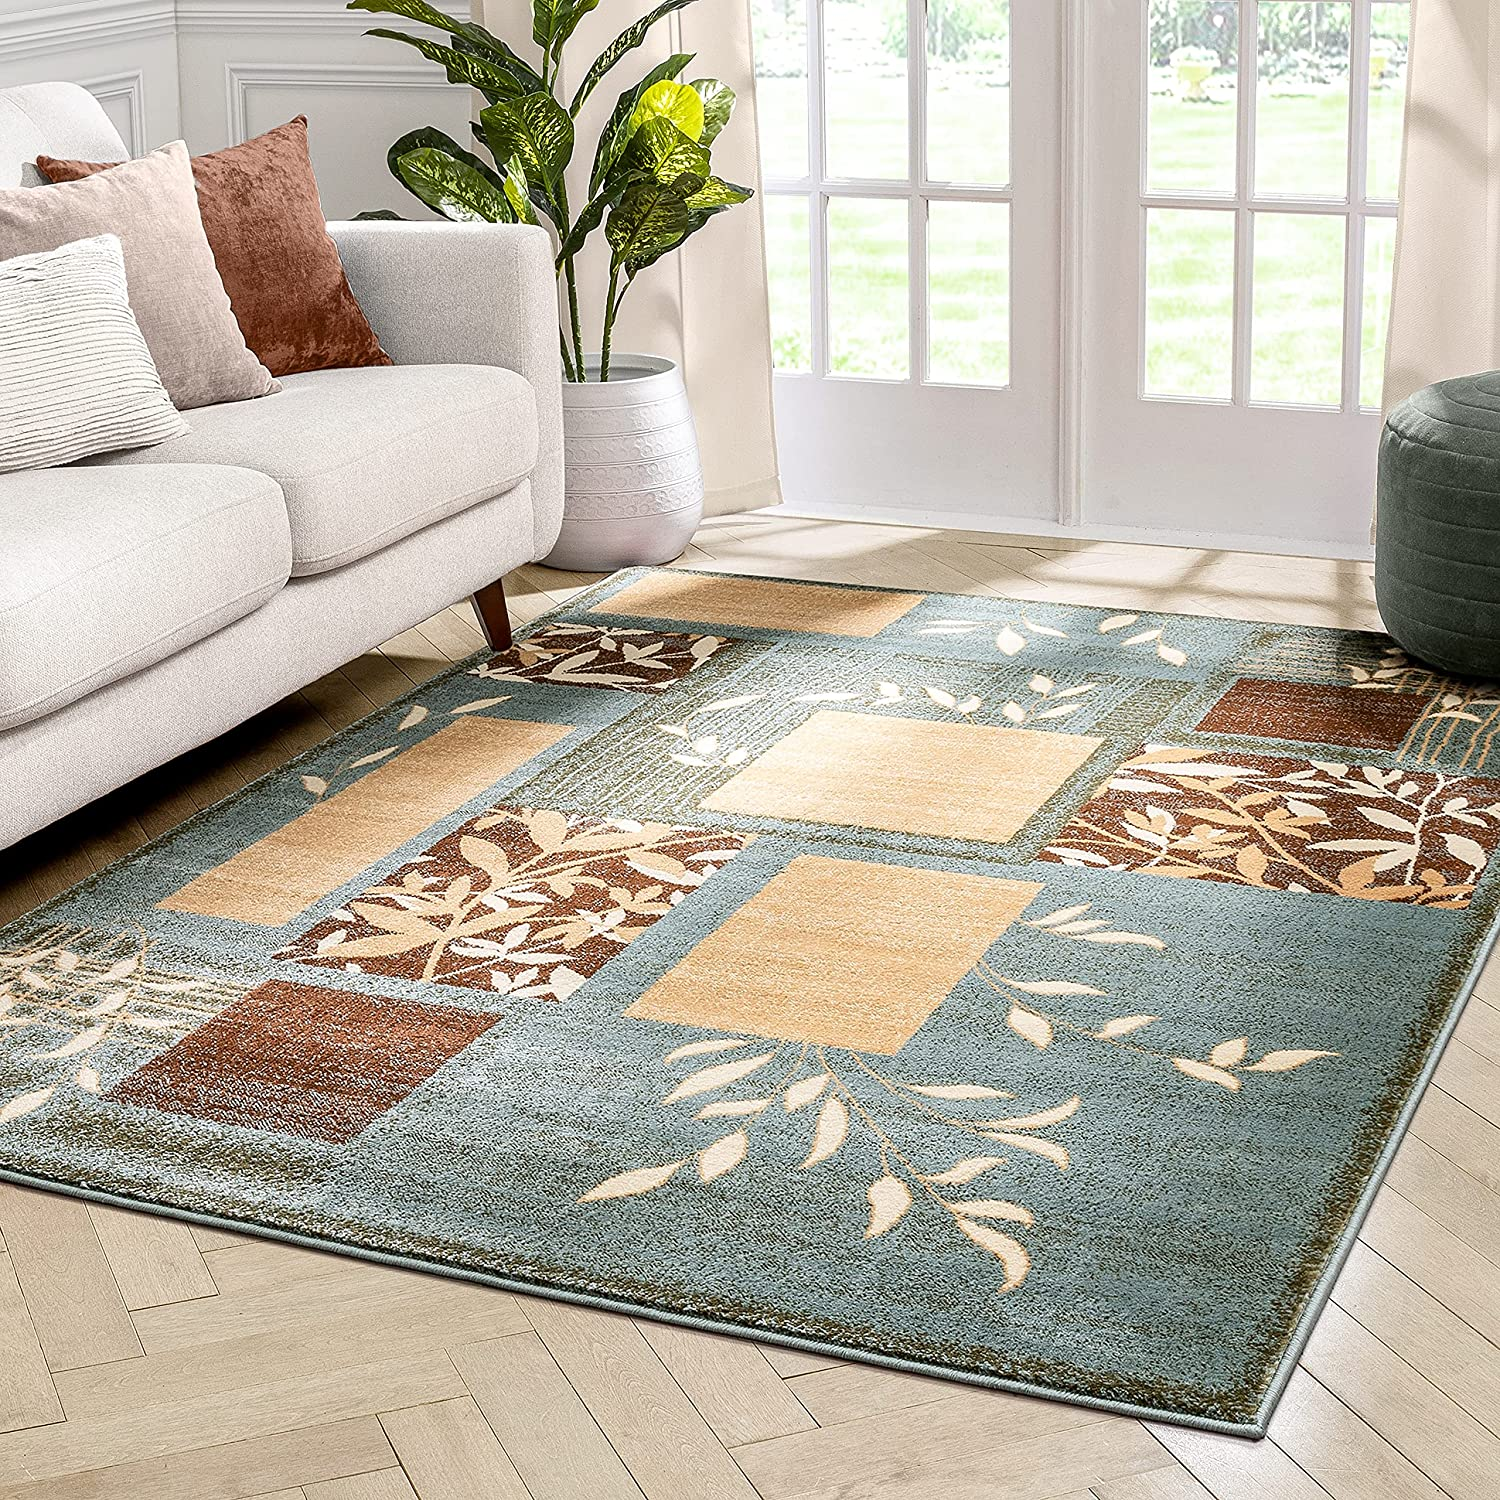 excellence Well Woven Barclay Hannover outlet Light Blue Area Rug 3'11'' Formal X